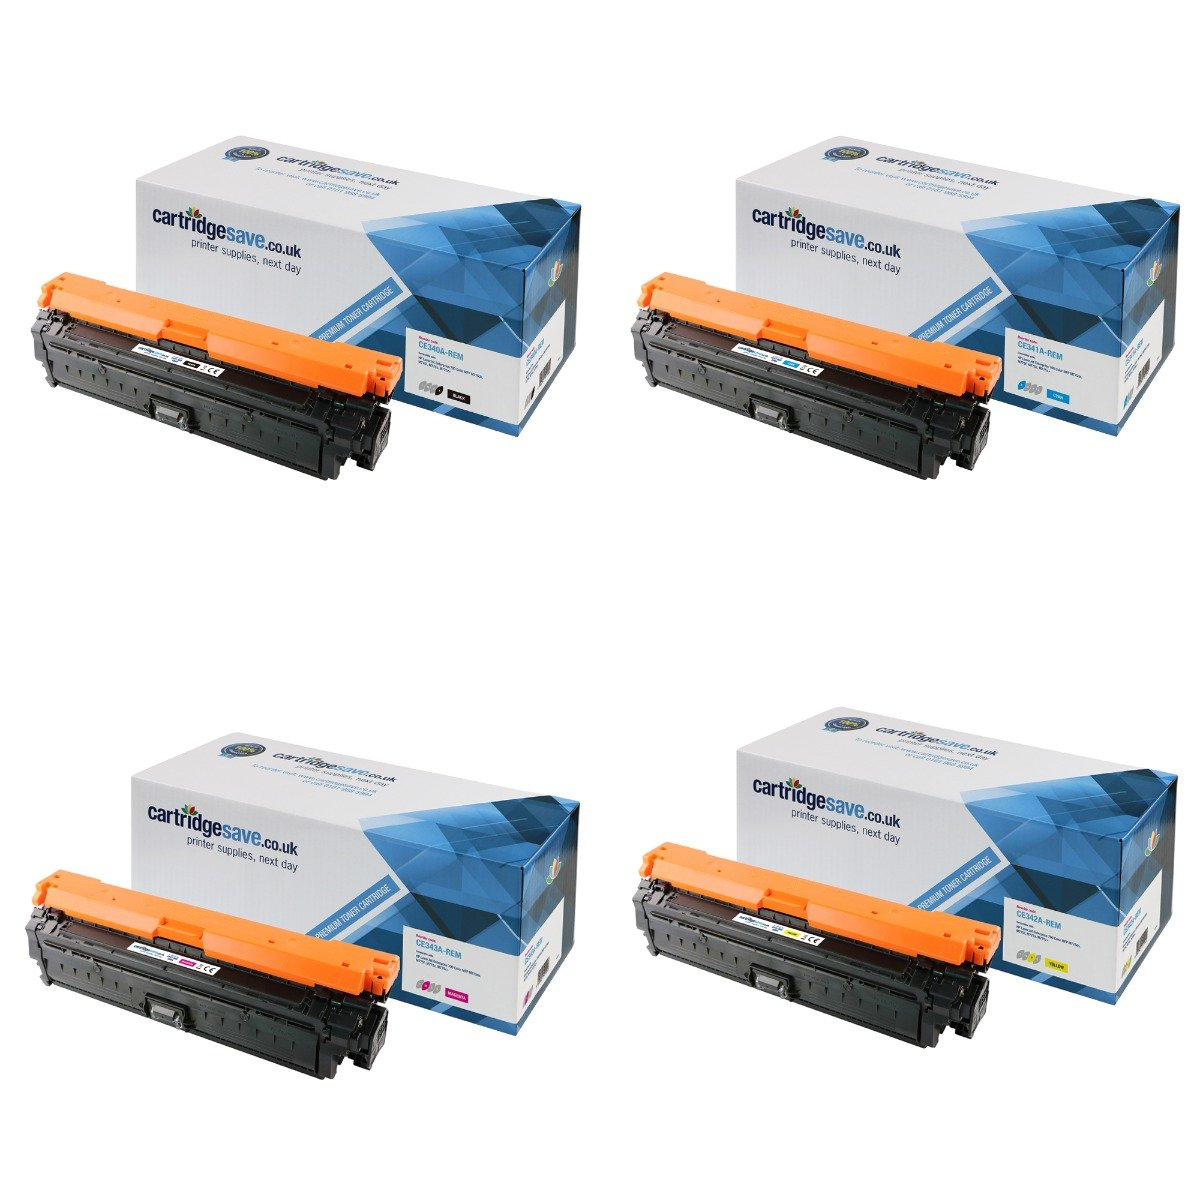 Compatible 4 Colour HP 651A Toner Cartridge Multipack - (CE340A/CE341A/CE342A/CE343A)